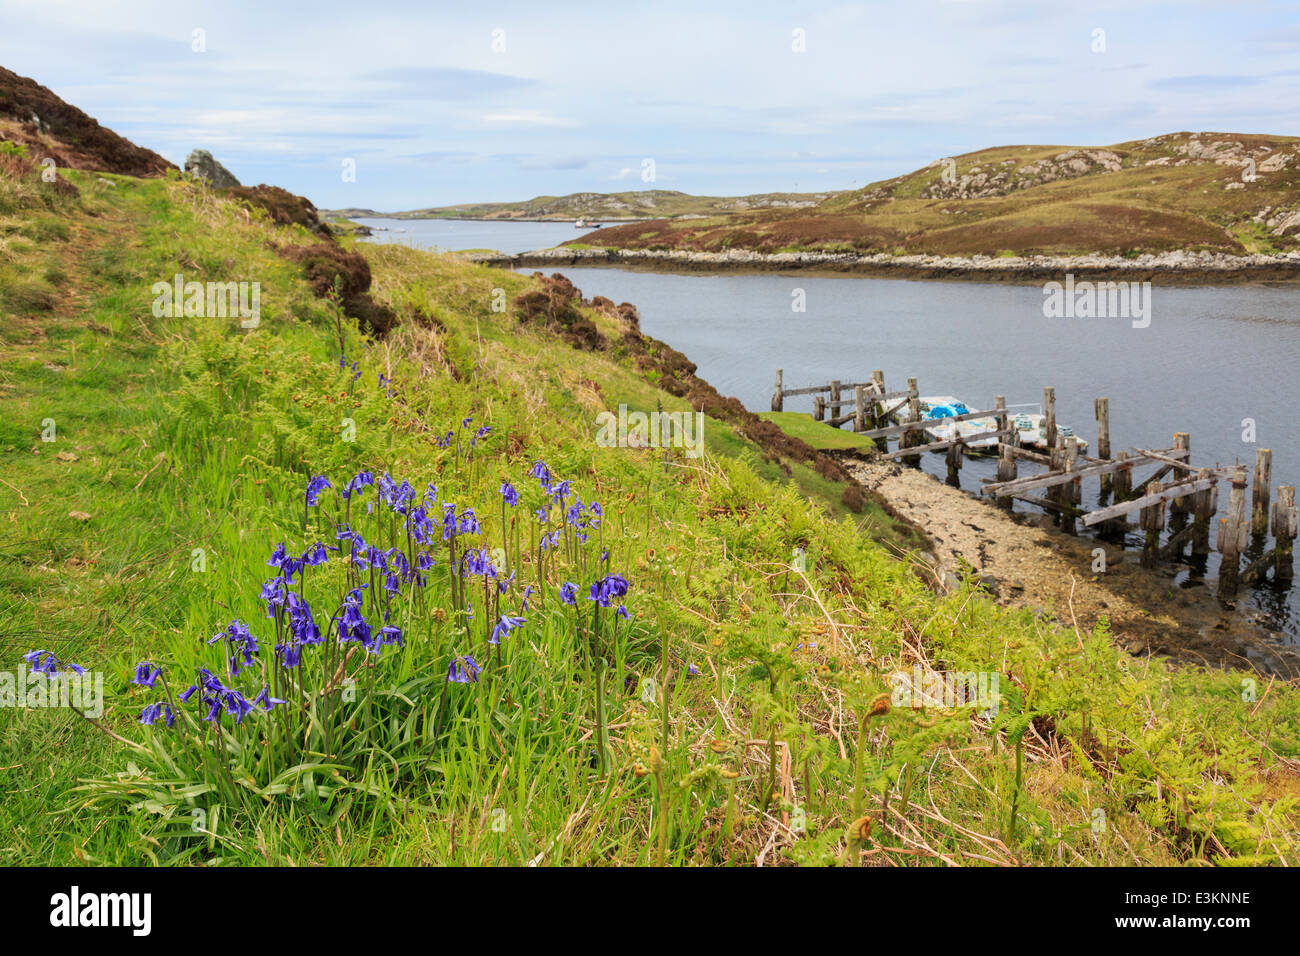 Coastal scene with Bluebells growing by Loch Sgioport, South Uist, Outer Hebrides, Western Isles, Scotland, UK, - Stock Image